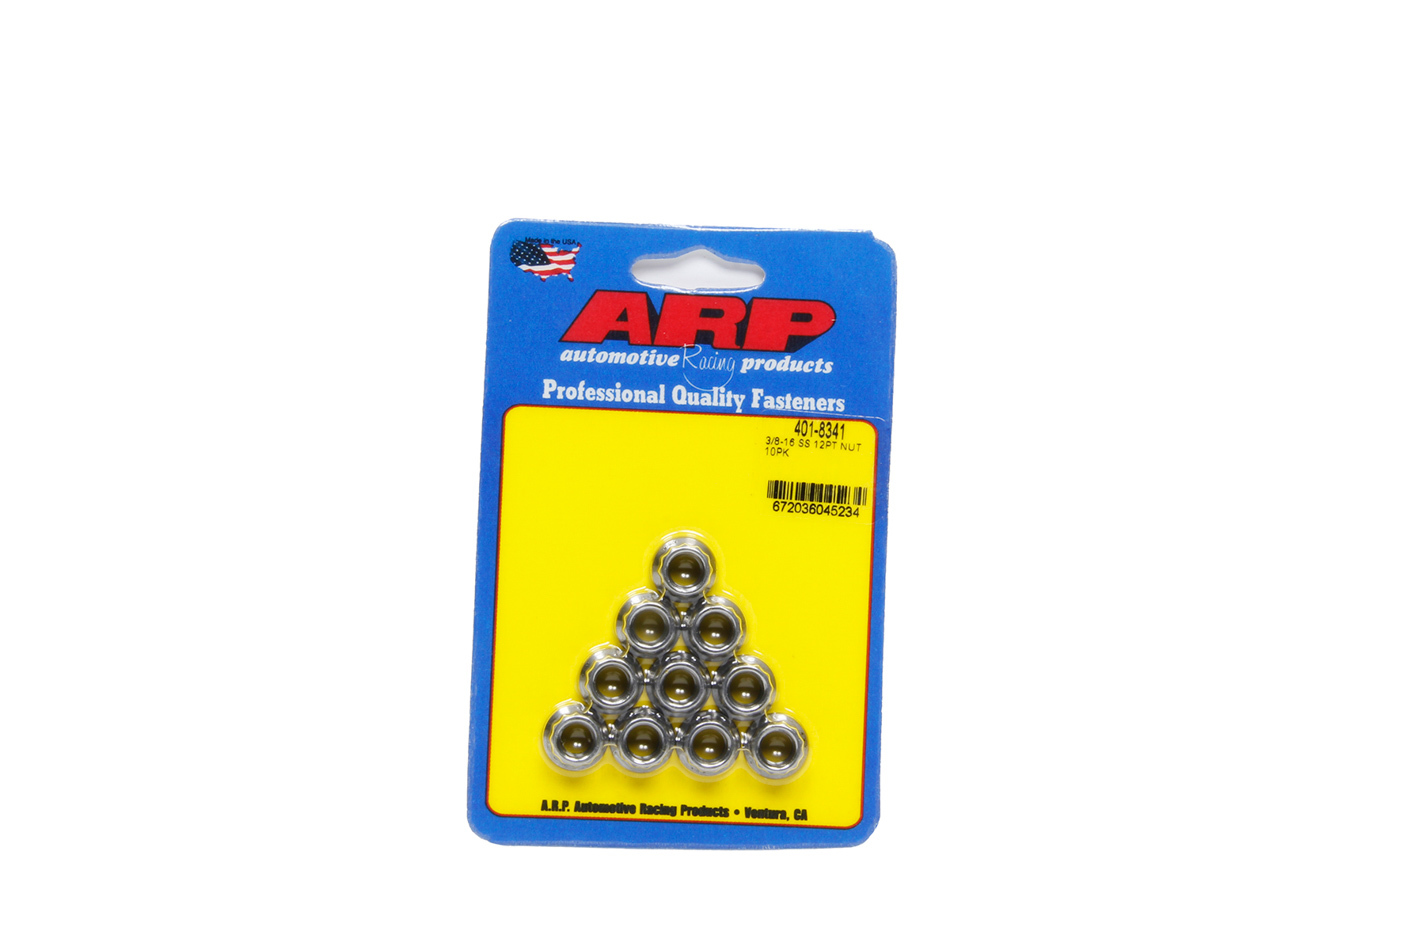 ARP 401-8341 Nut, 3/8-16 in Thread, 7/16 in 12 Point Head, Stainless, Polished, Universal, Set of 10